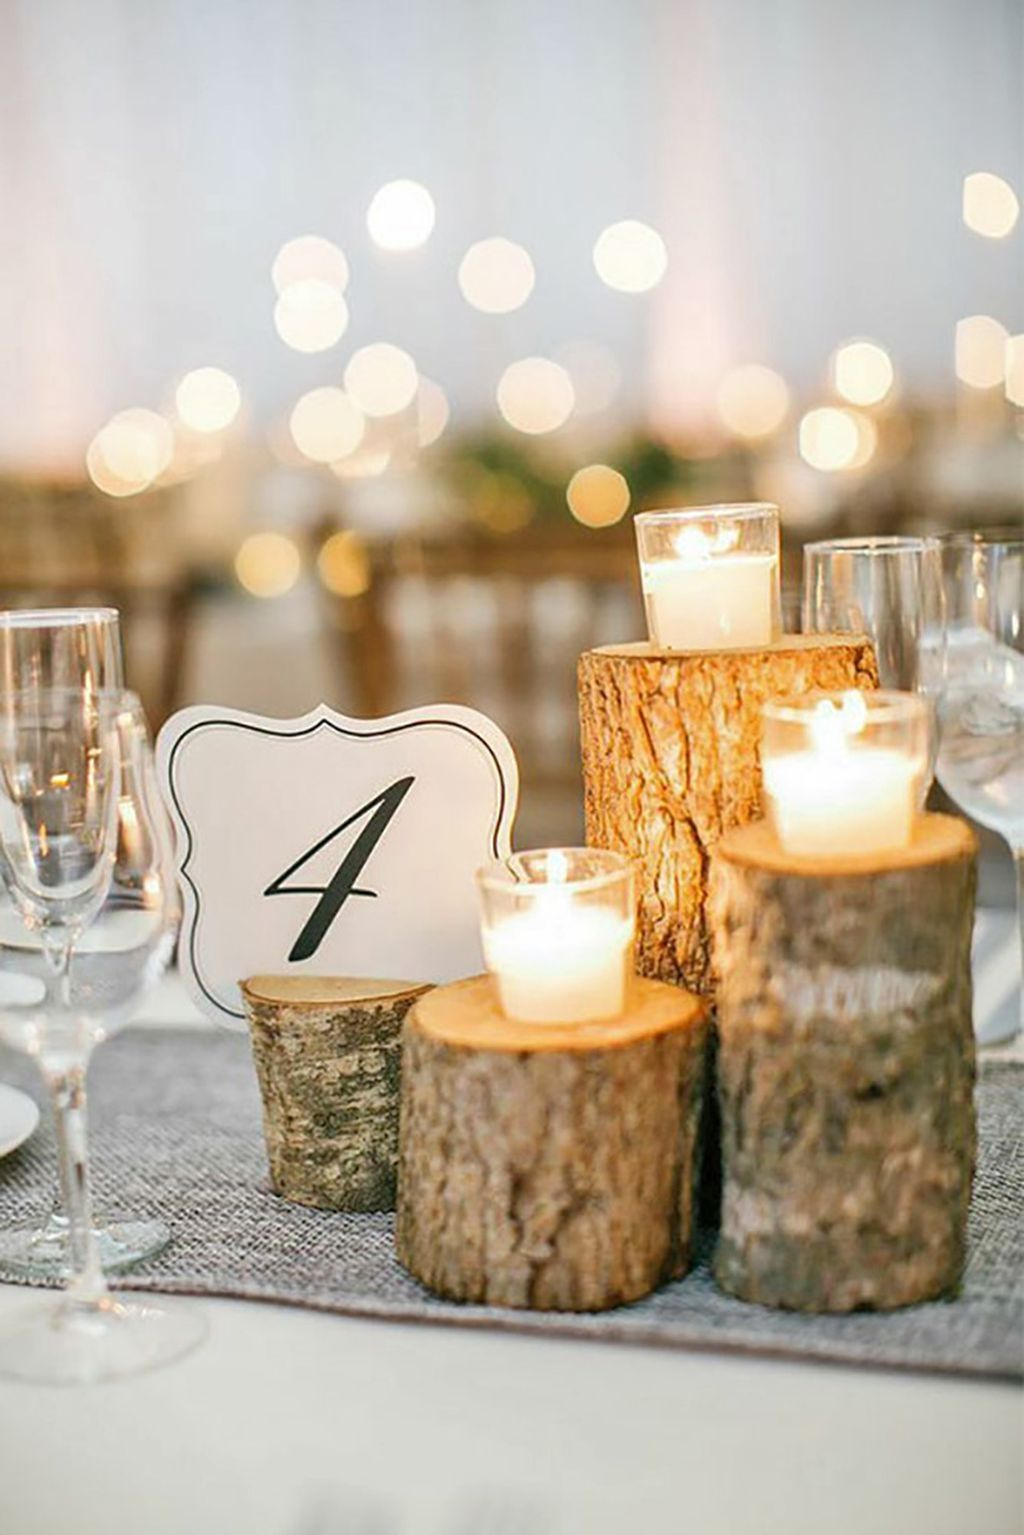 Decoration ideas for 40th wedding anniversary   Best Romantic Decorating Ideas for a Christmas Wedding